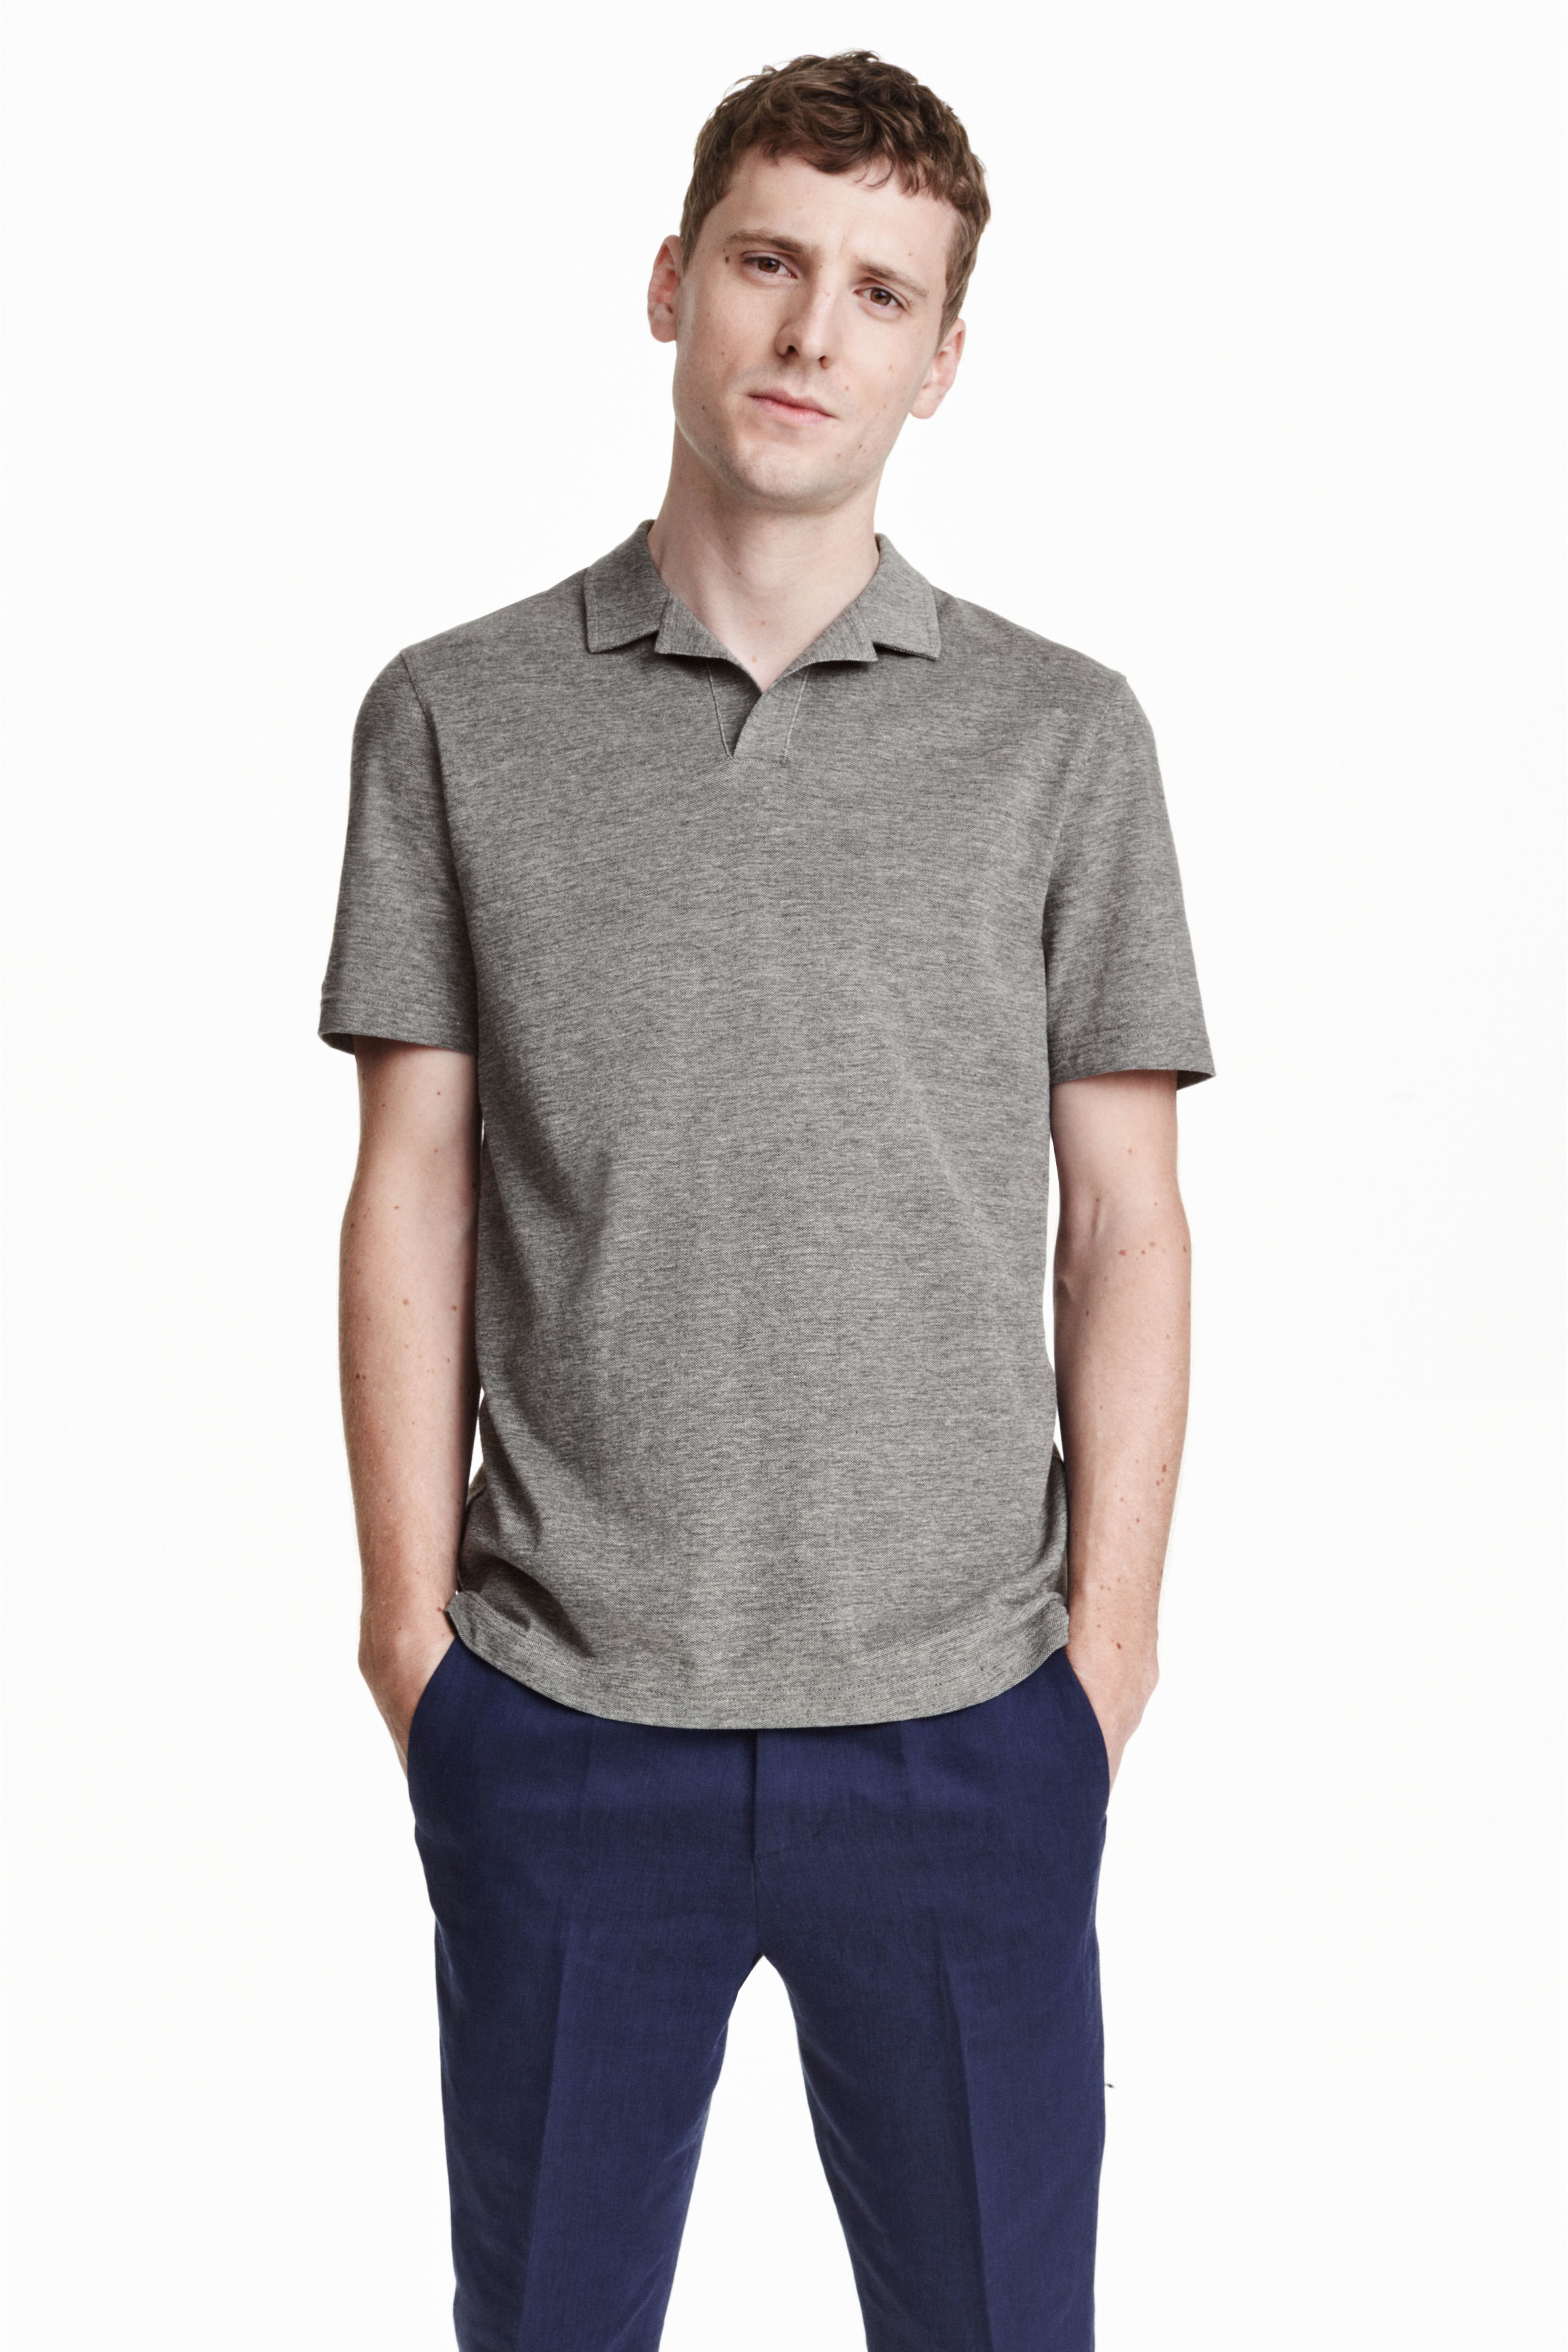 H m polo shirt in premium cotton in gray for men lyst for Bear river workwear shirts